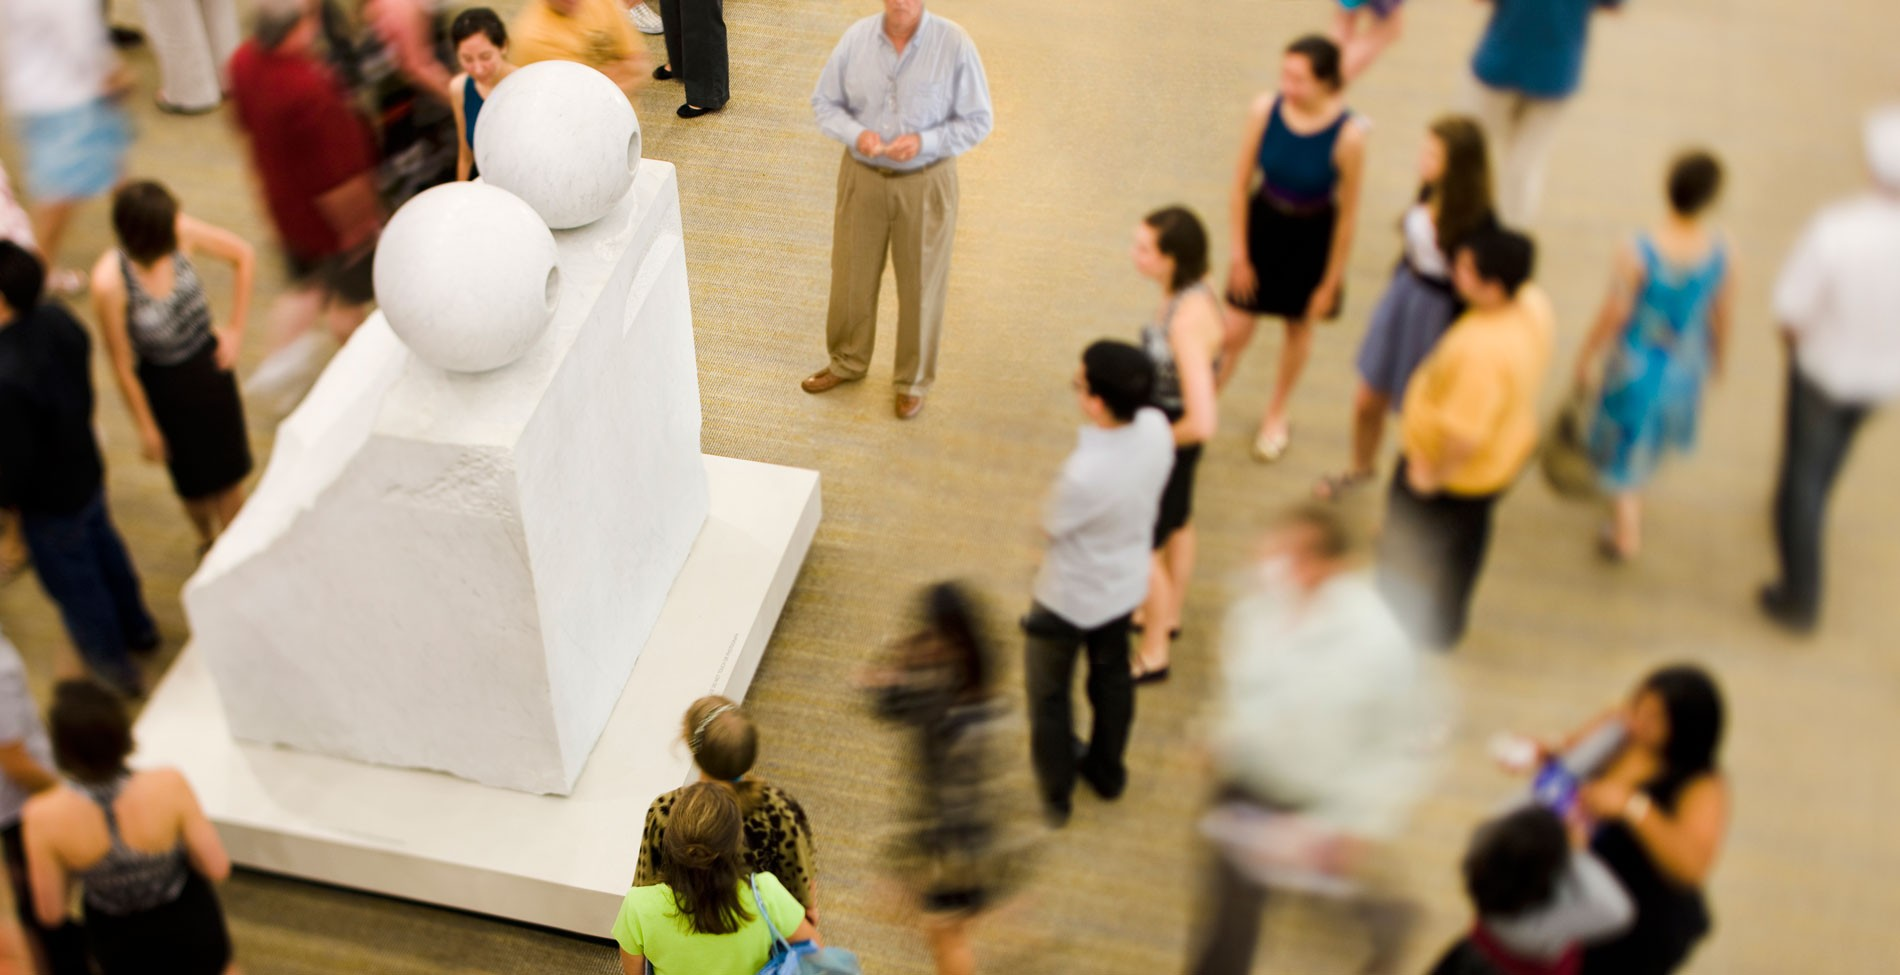 People standing around a large marble sculpture